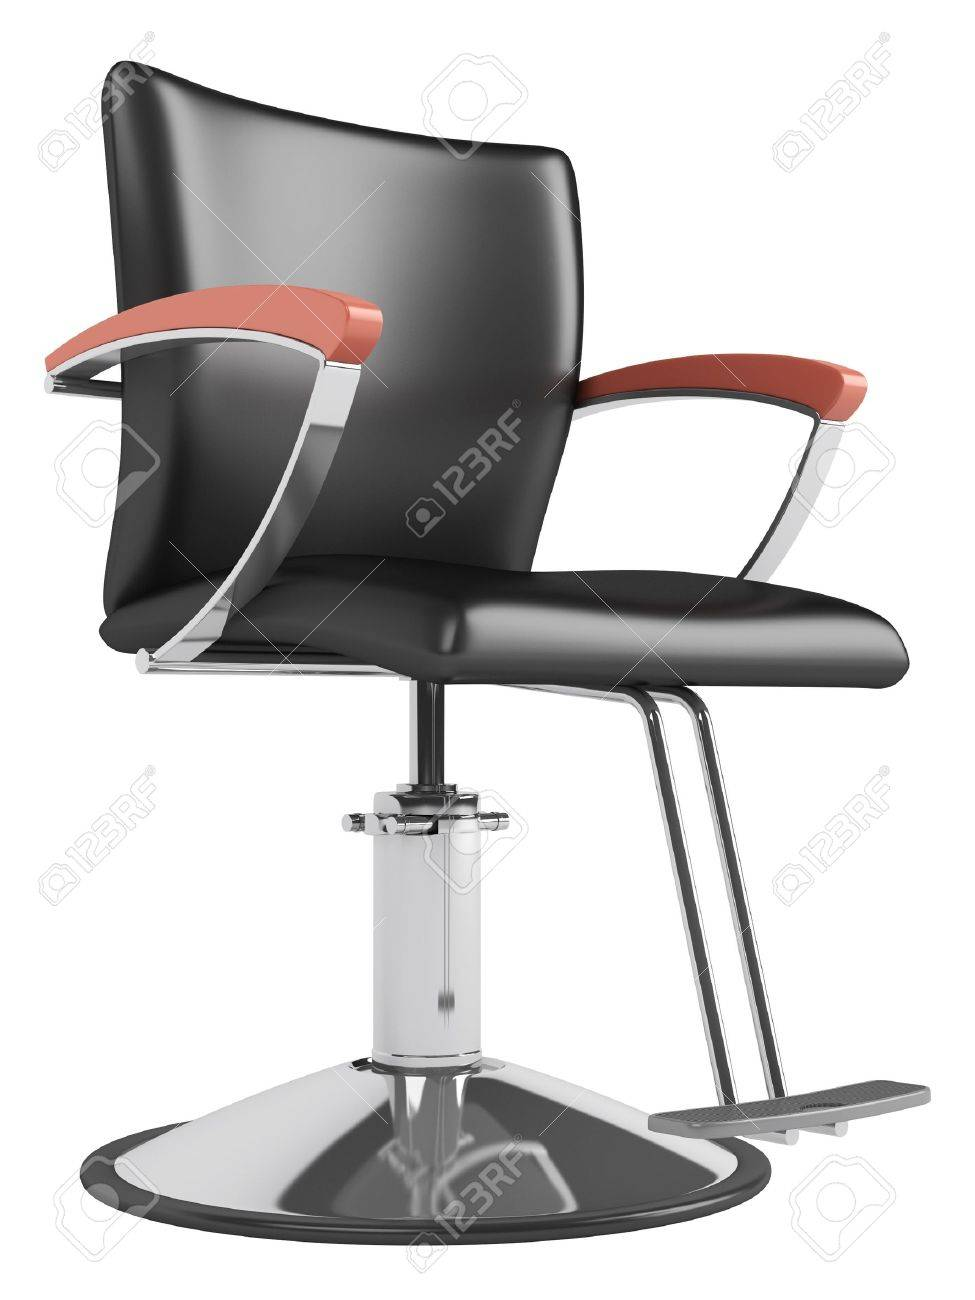 Hair salon chair isolated stock photos illustrations and vector art - Hair Styling Black Hairdressing Salon Chair Isolated On White Background